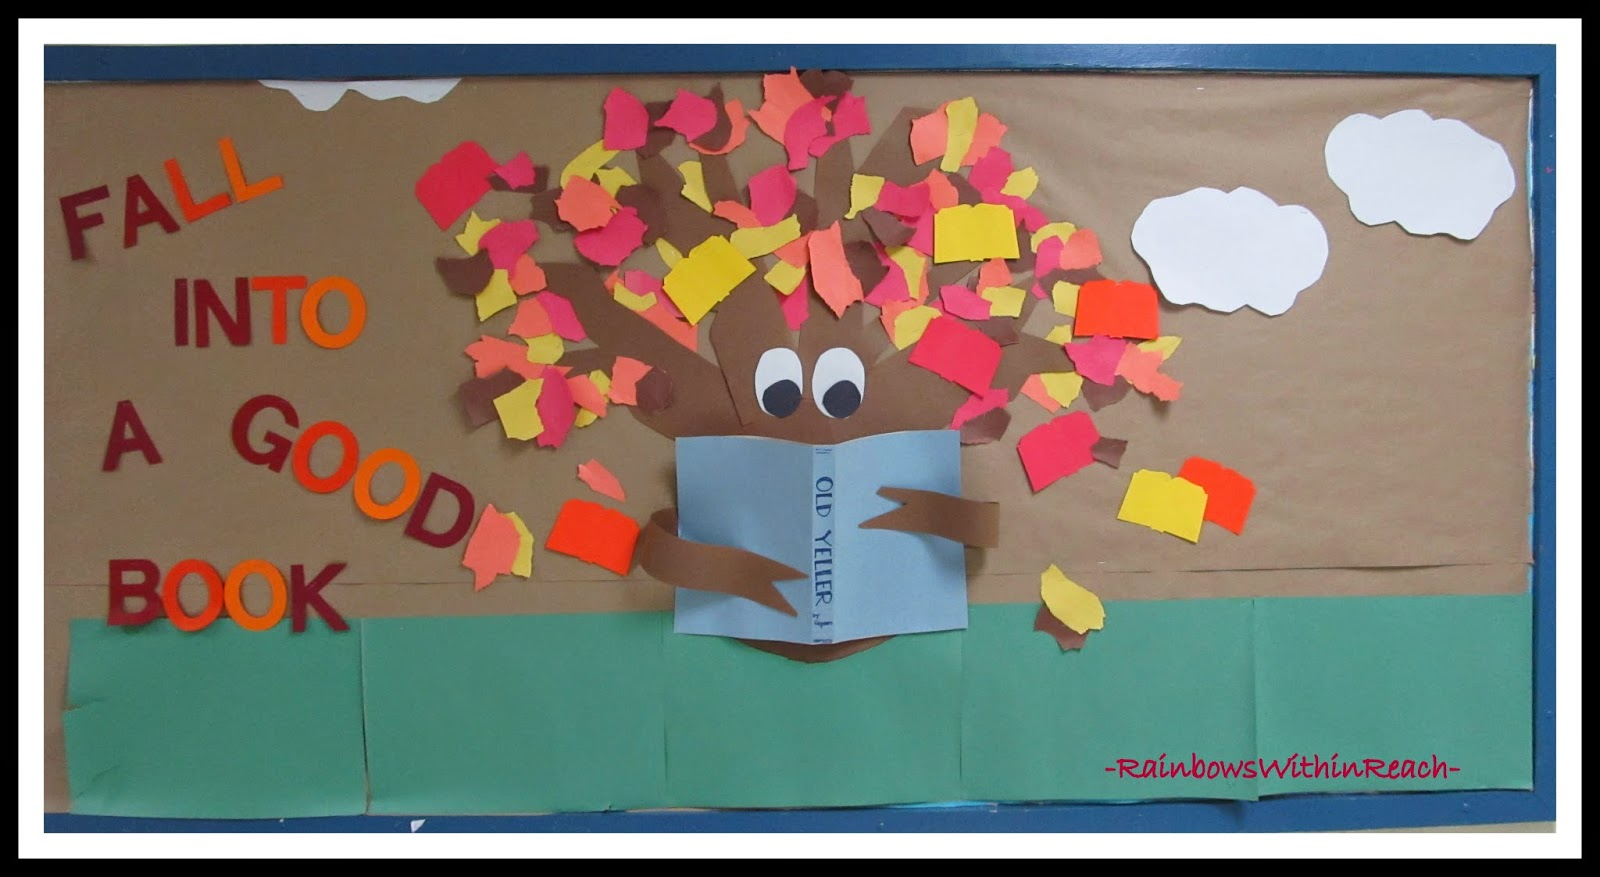 10 Gorgeous Back To School Preschool Bulletin Board Ideas www rainbowswithinreach blogspot 16 2020